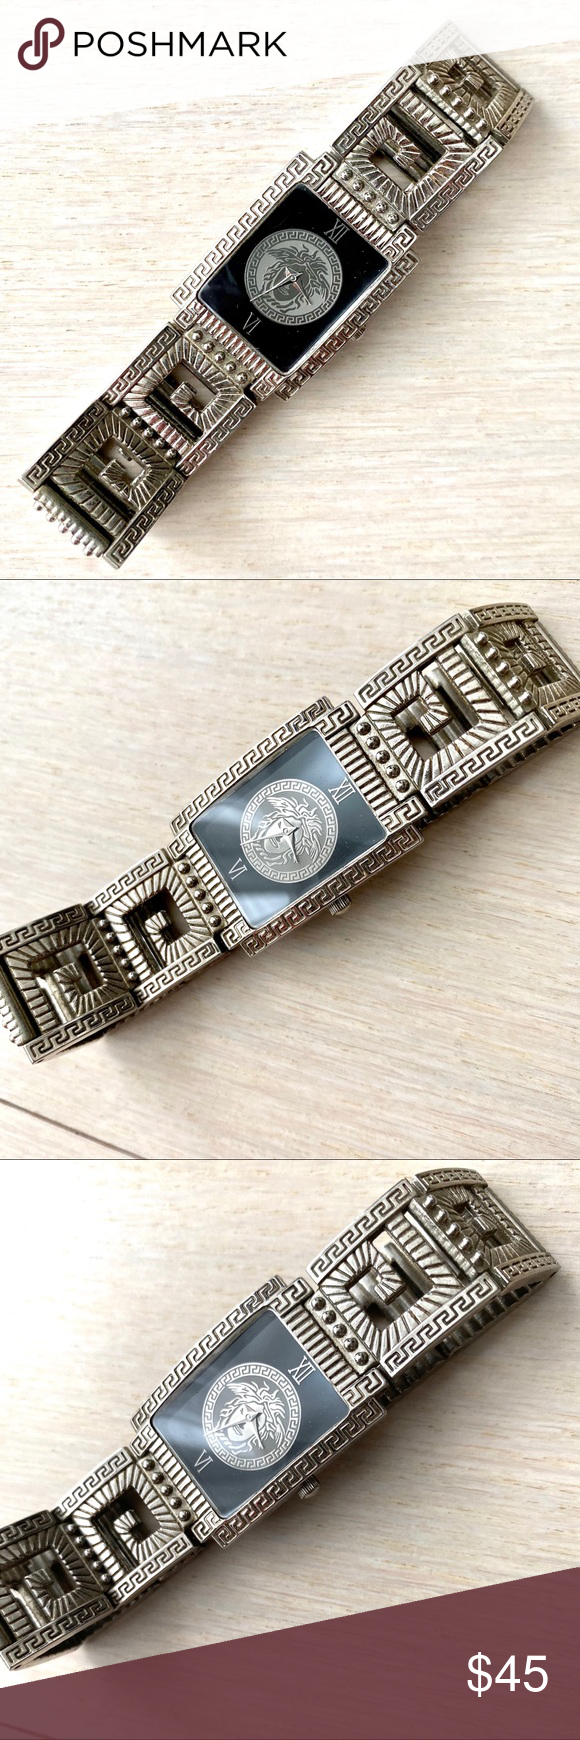 Vintage Silver Bracelet Clasp Watch Roman Numerals This vintage watch was purchased from a jewelry booth about 20 years ago. The battery has been replaced at a jeweler, so it will tell time for awhile!  General wear on the finish, particularly on the clasp. Nice gift. Vintage Jewelry #vintagewatches